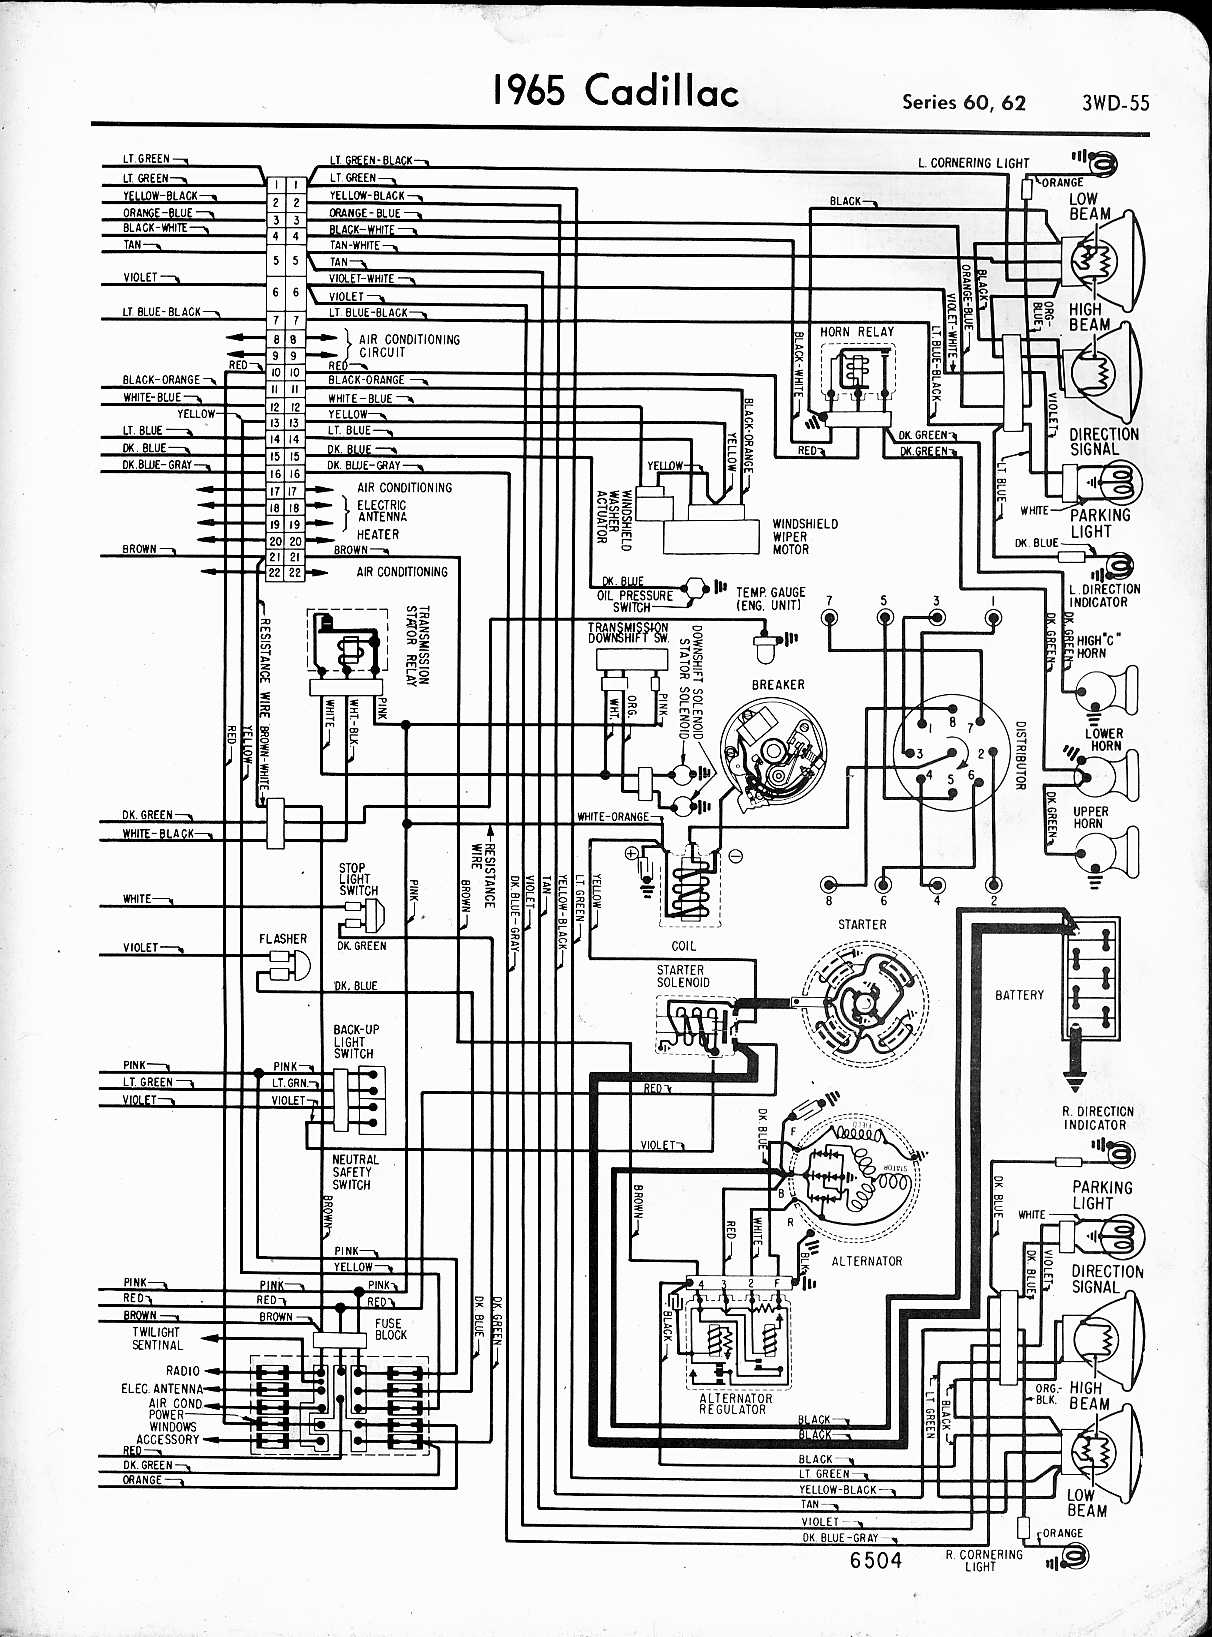 MWireCadi65_3WD 055 68 cadillac wiring harness 1969 cadillac \u2022 free wiring diagrams cadillac wiring diagrams at bayanpartner.co